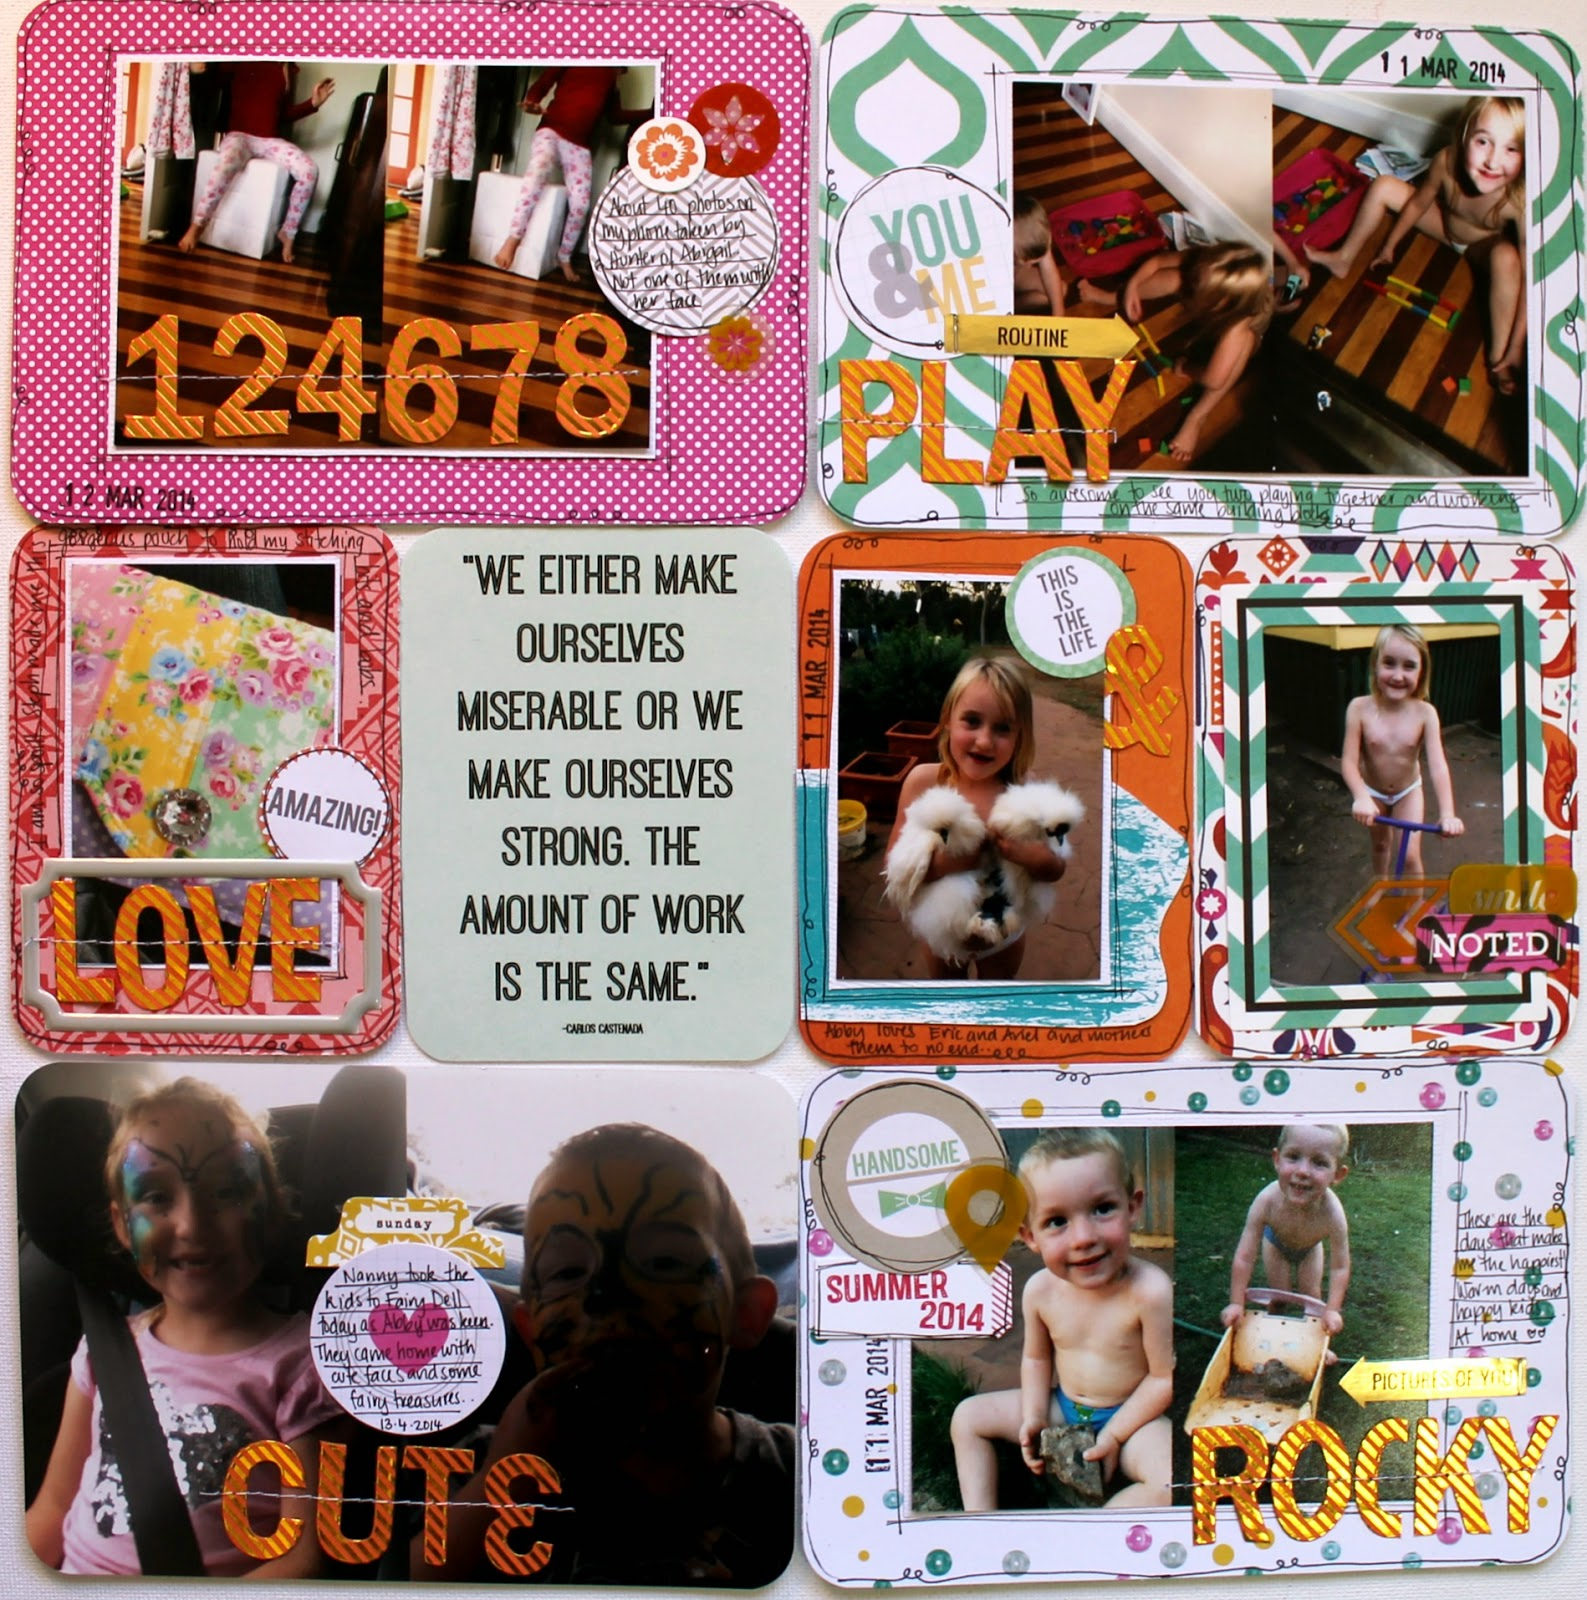 Week 15 Project Life layout by Bernii Miller using the Scrappy Canary August Bohemian kit.